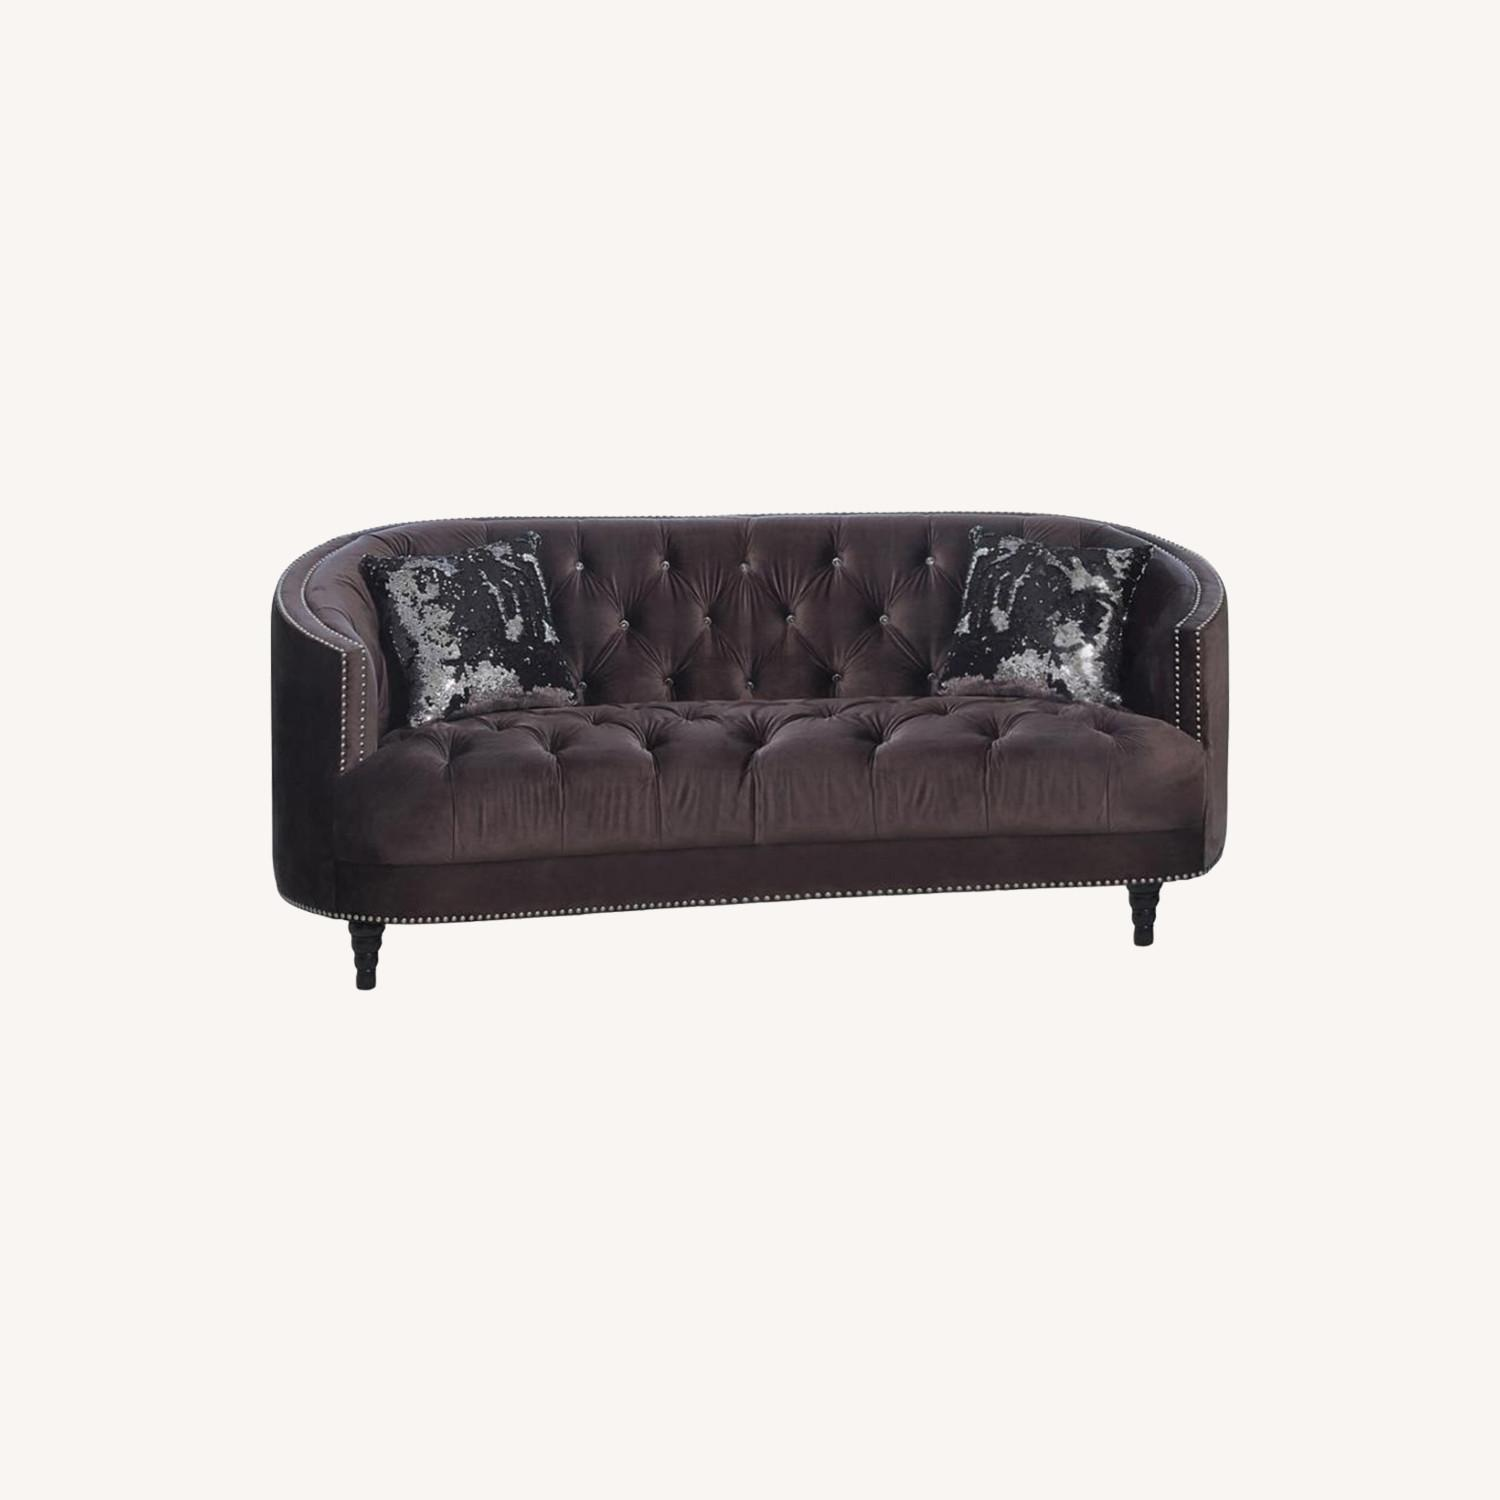 Sofa In C-Shape Finished In Chocolate Brown - image-3